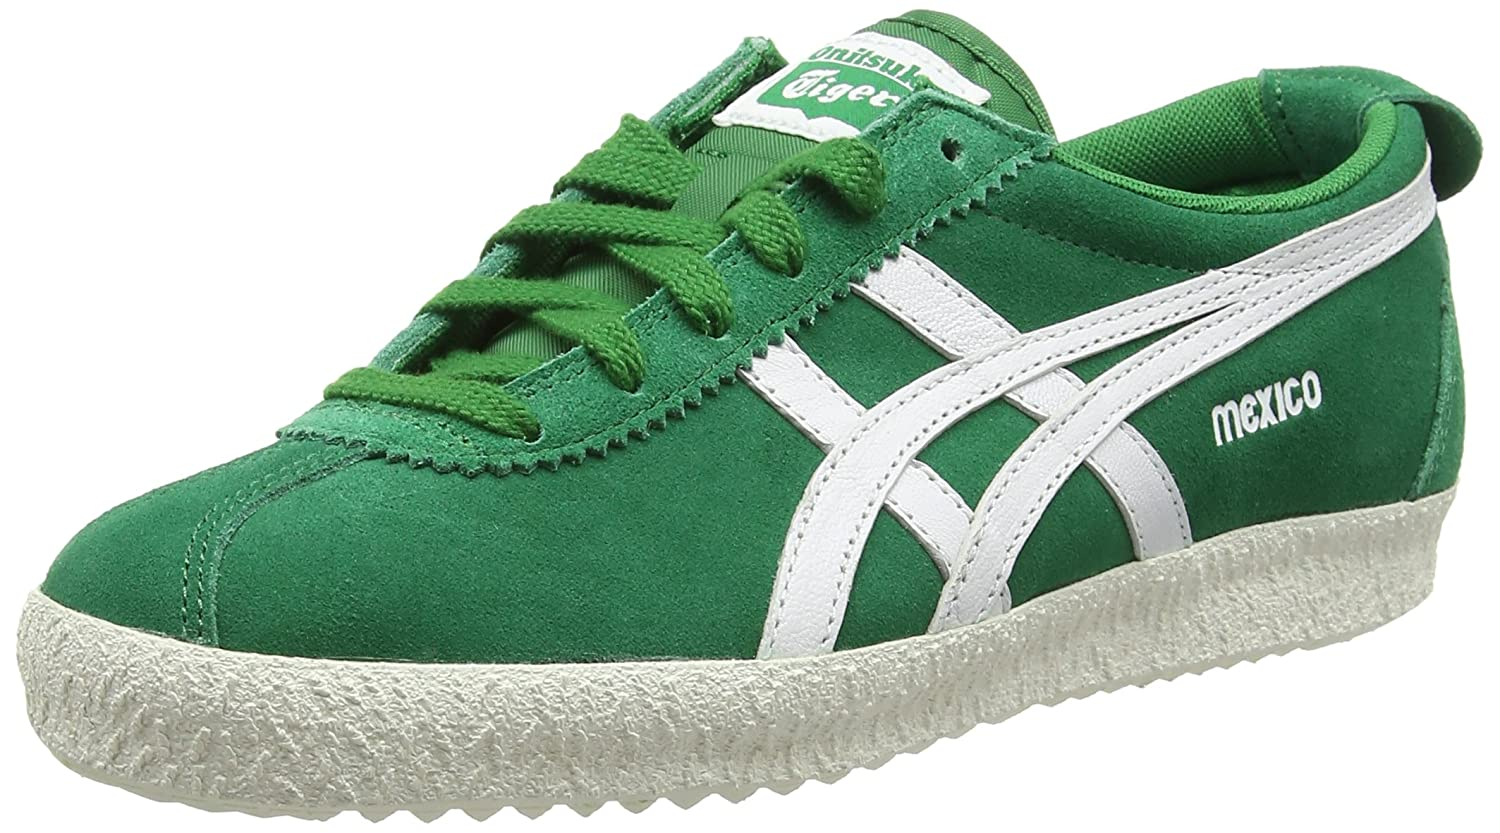 Asics Onitsuka Tiger MEXICO DELEGATION scarpa in Pelle colore Green